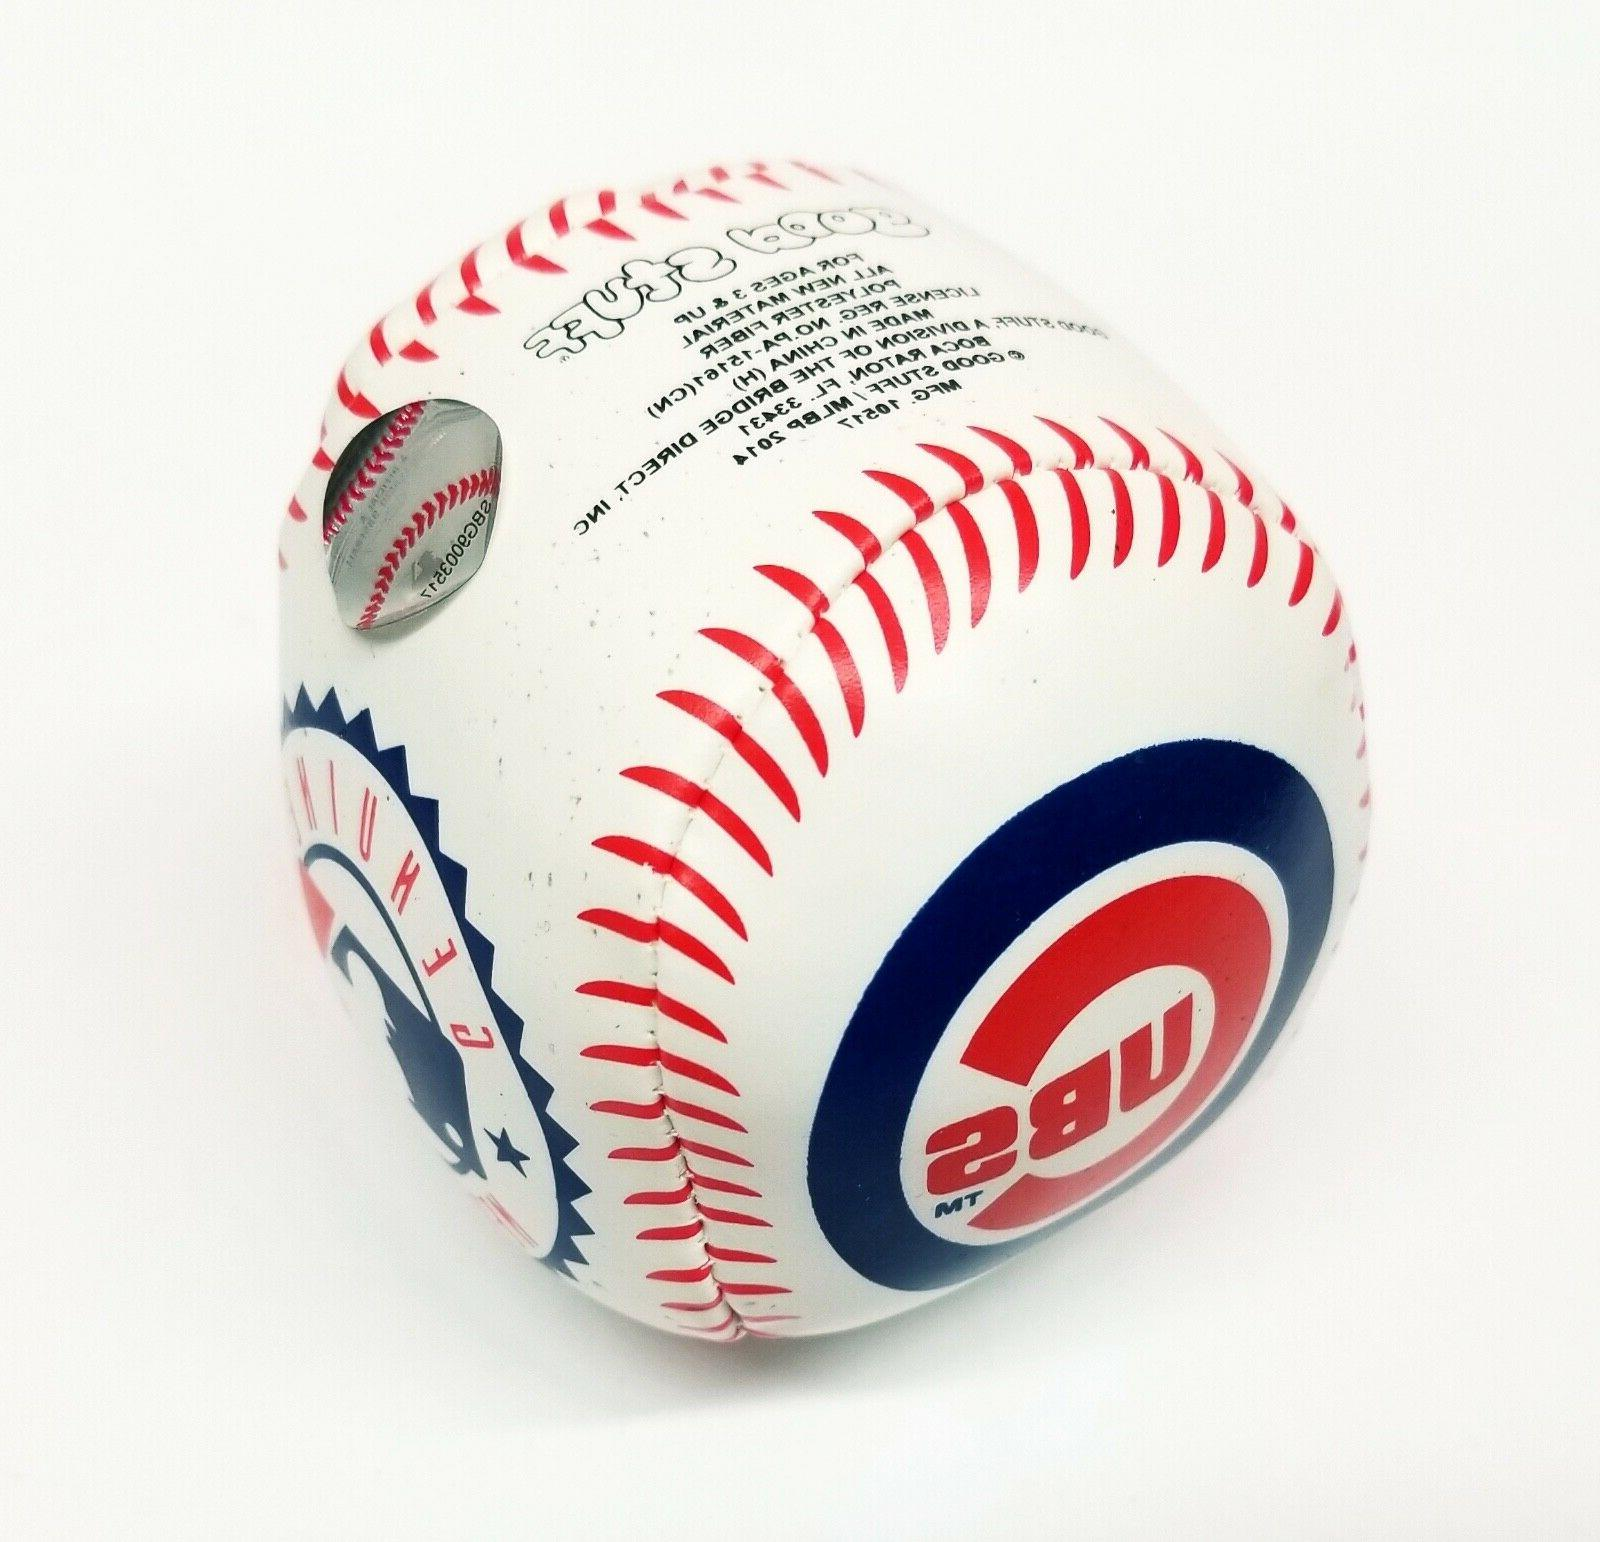 MLB Chicago Cubs Mini Soft by Stuff